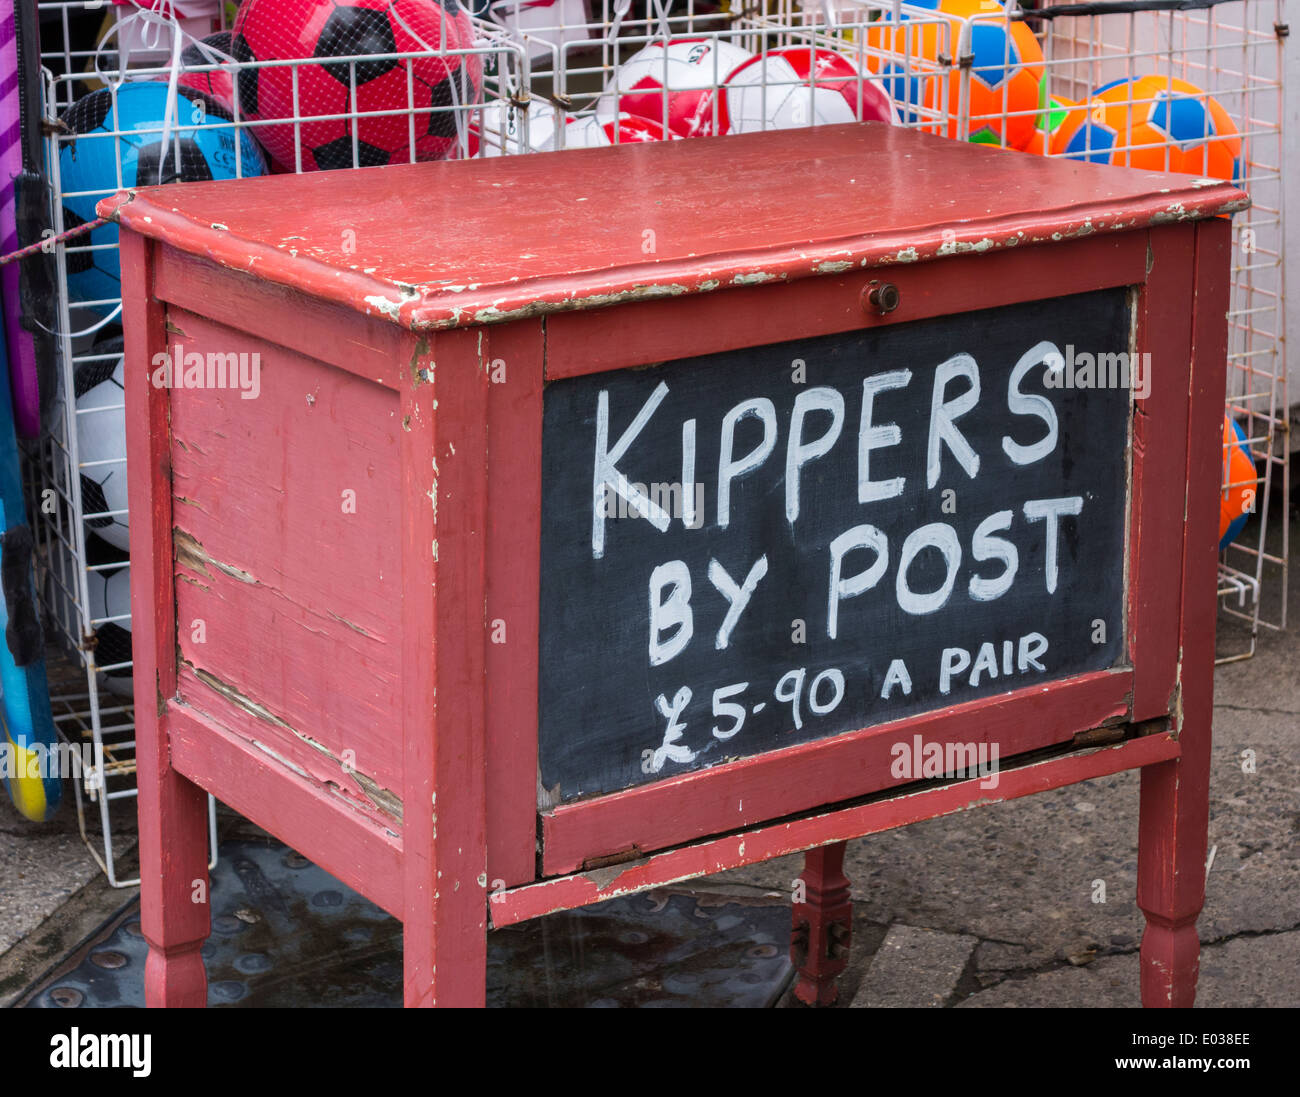 Kippers by post sign in Whitby, North Yorkshire, England.UK - Stock Image